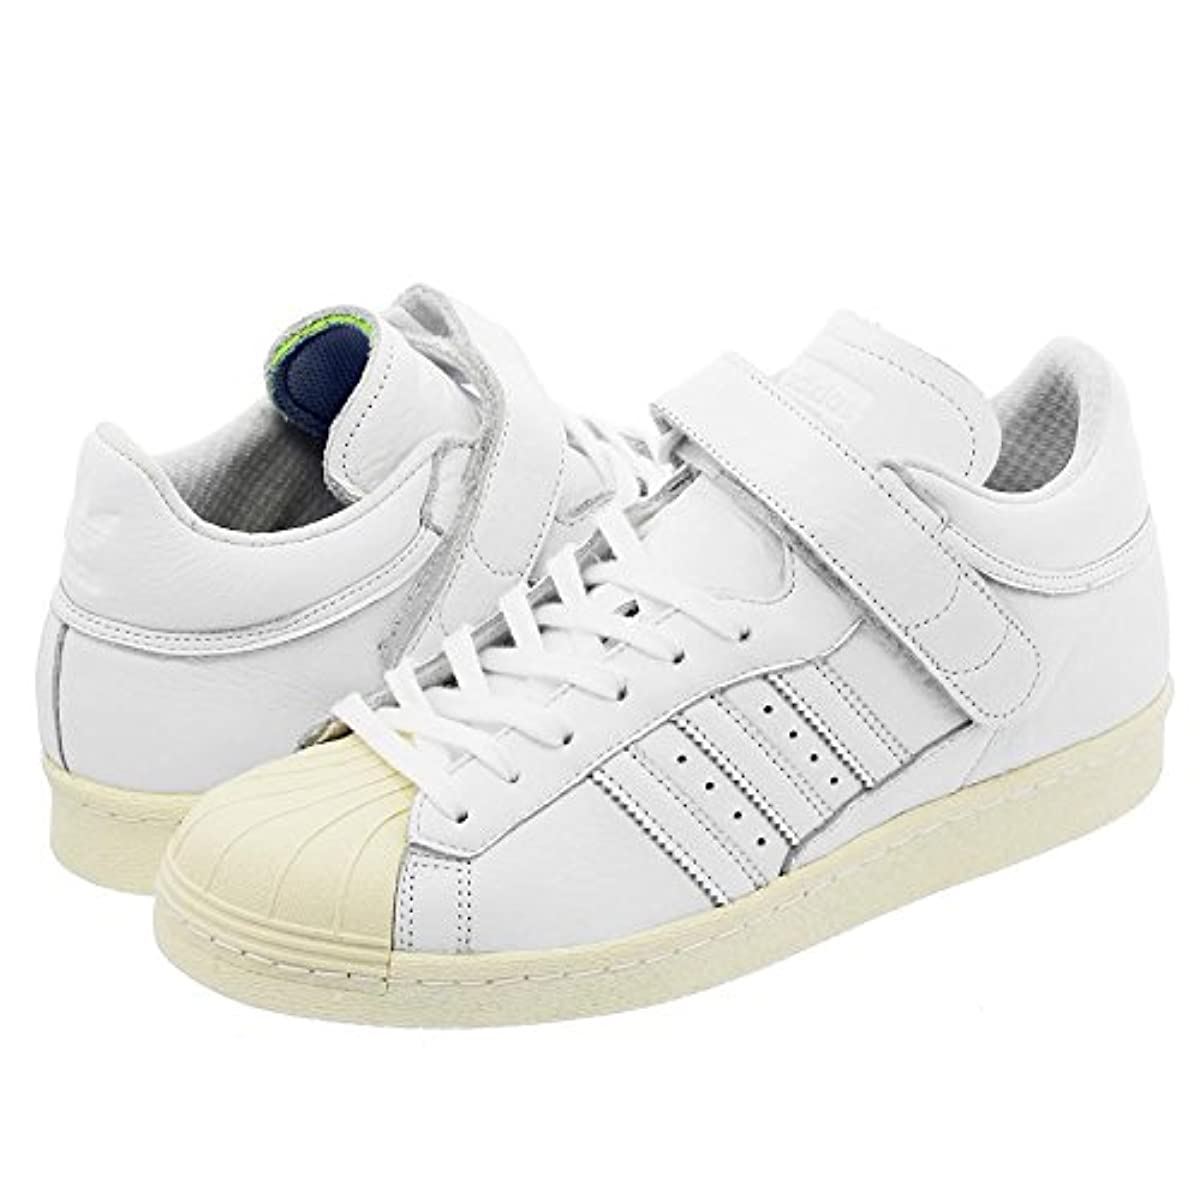 [해외] 아디다스 ADIDAS PRO SHELL 80S WHITE/WHITE/CHALK BLUE 【ADIDAS ORIGINALS】【국내 점포 한정 모델】